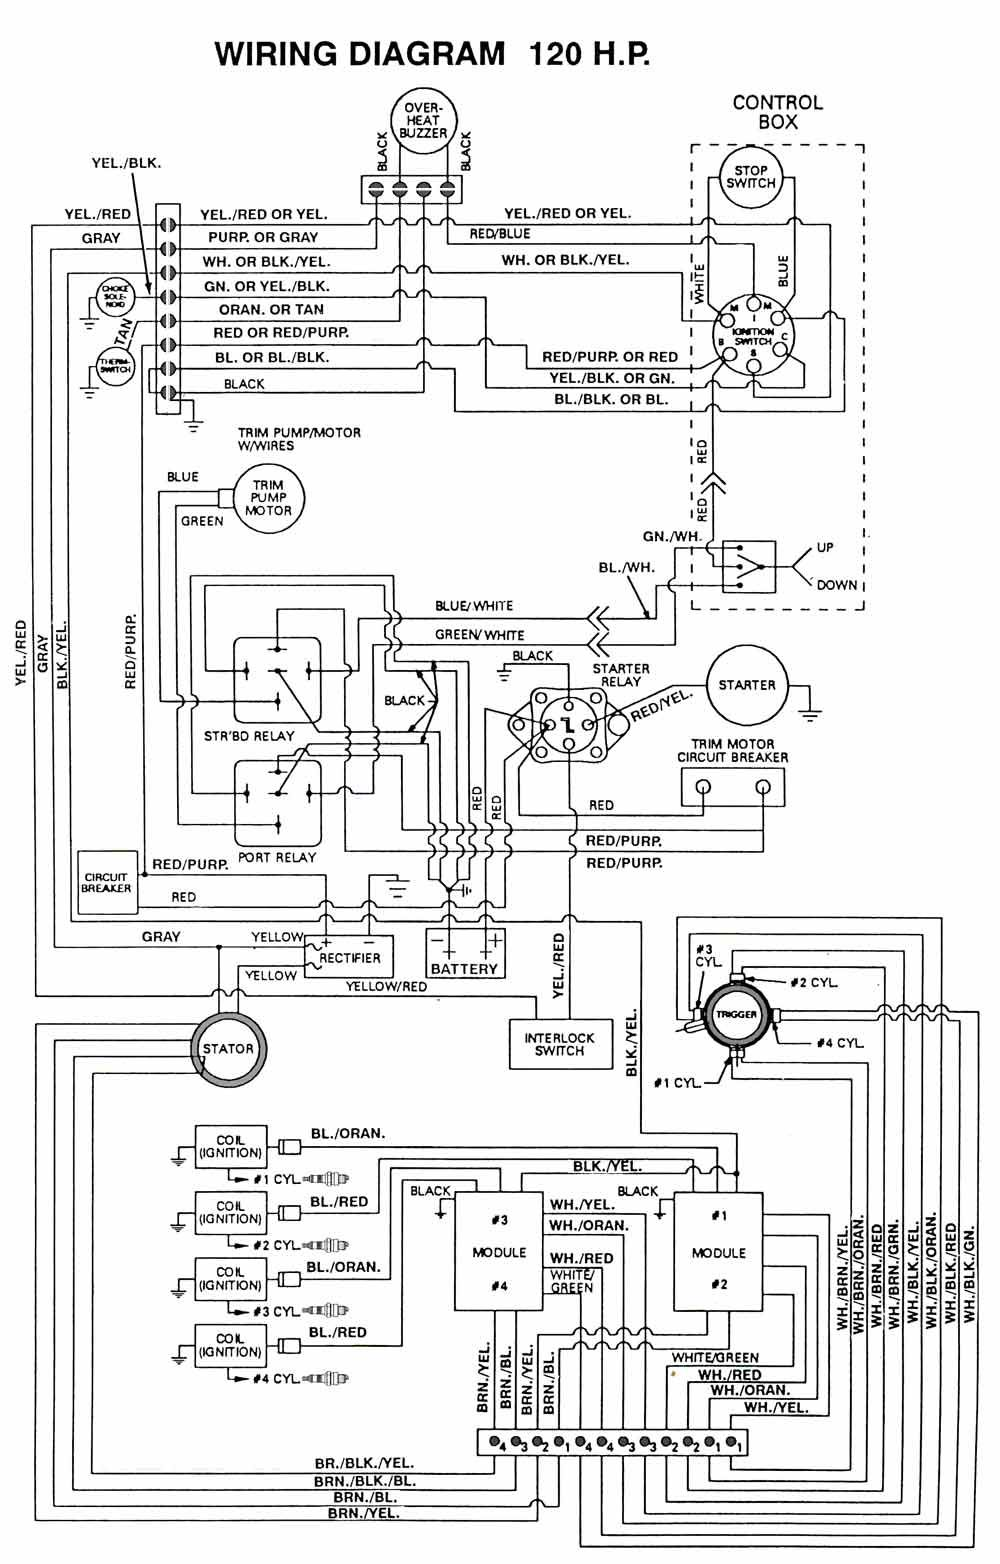 small resolution of image result for wiring diagram for 1990 mercury force 120 hp ignition 4 cyl force wiring mercury marine ignition 4 cyl force wiring